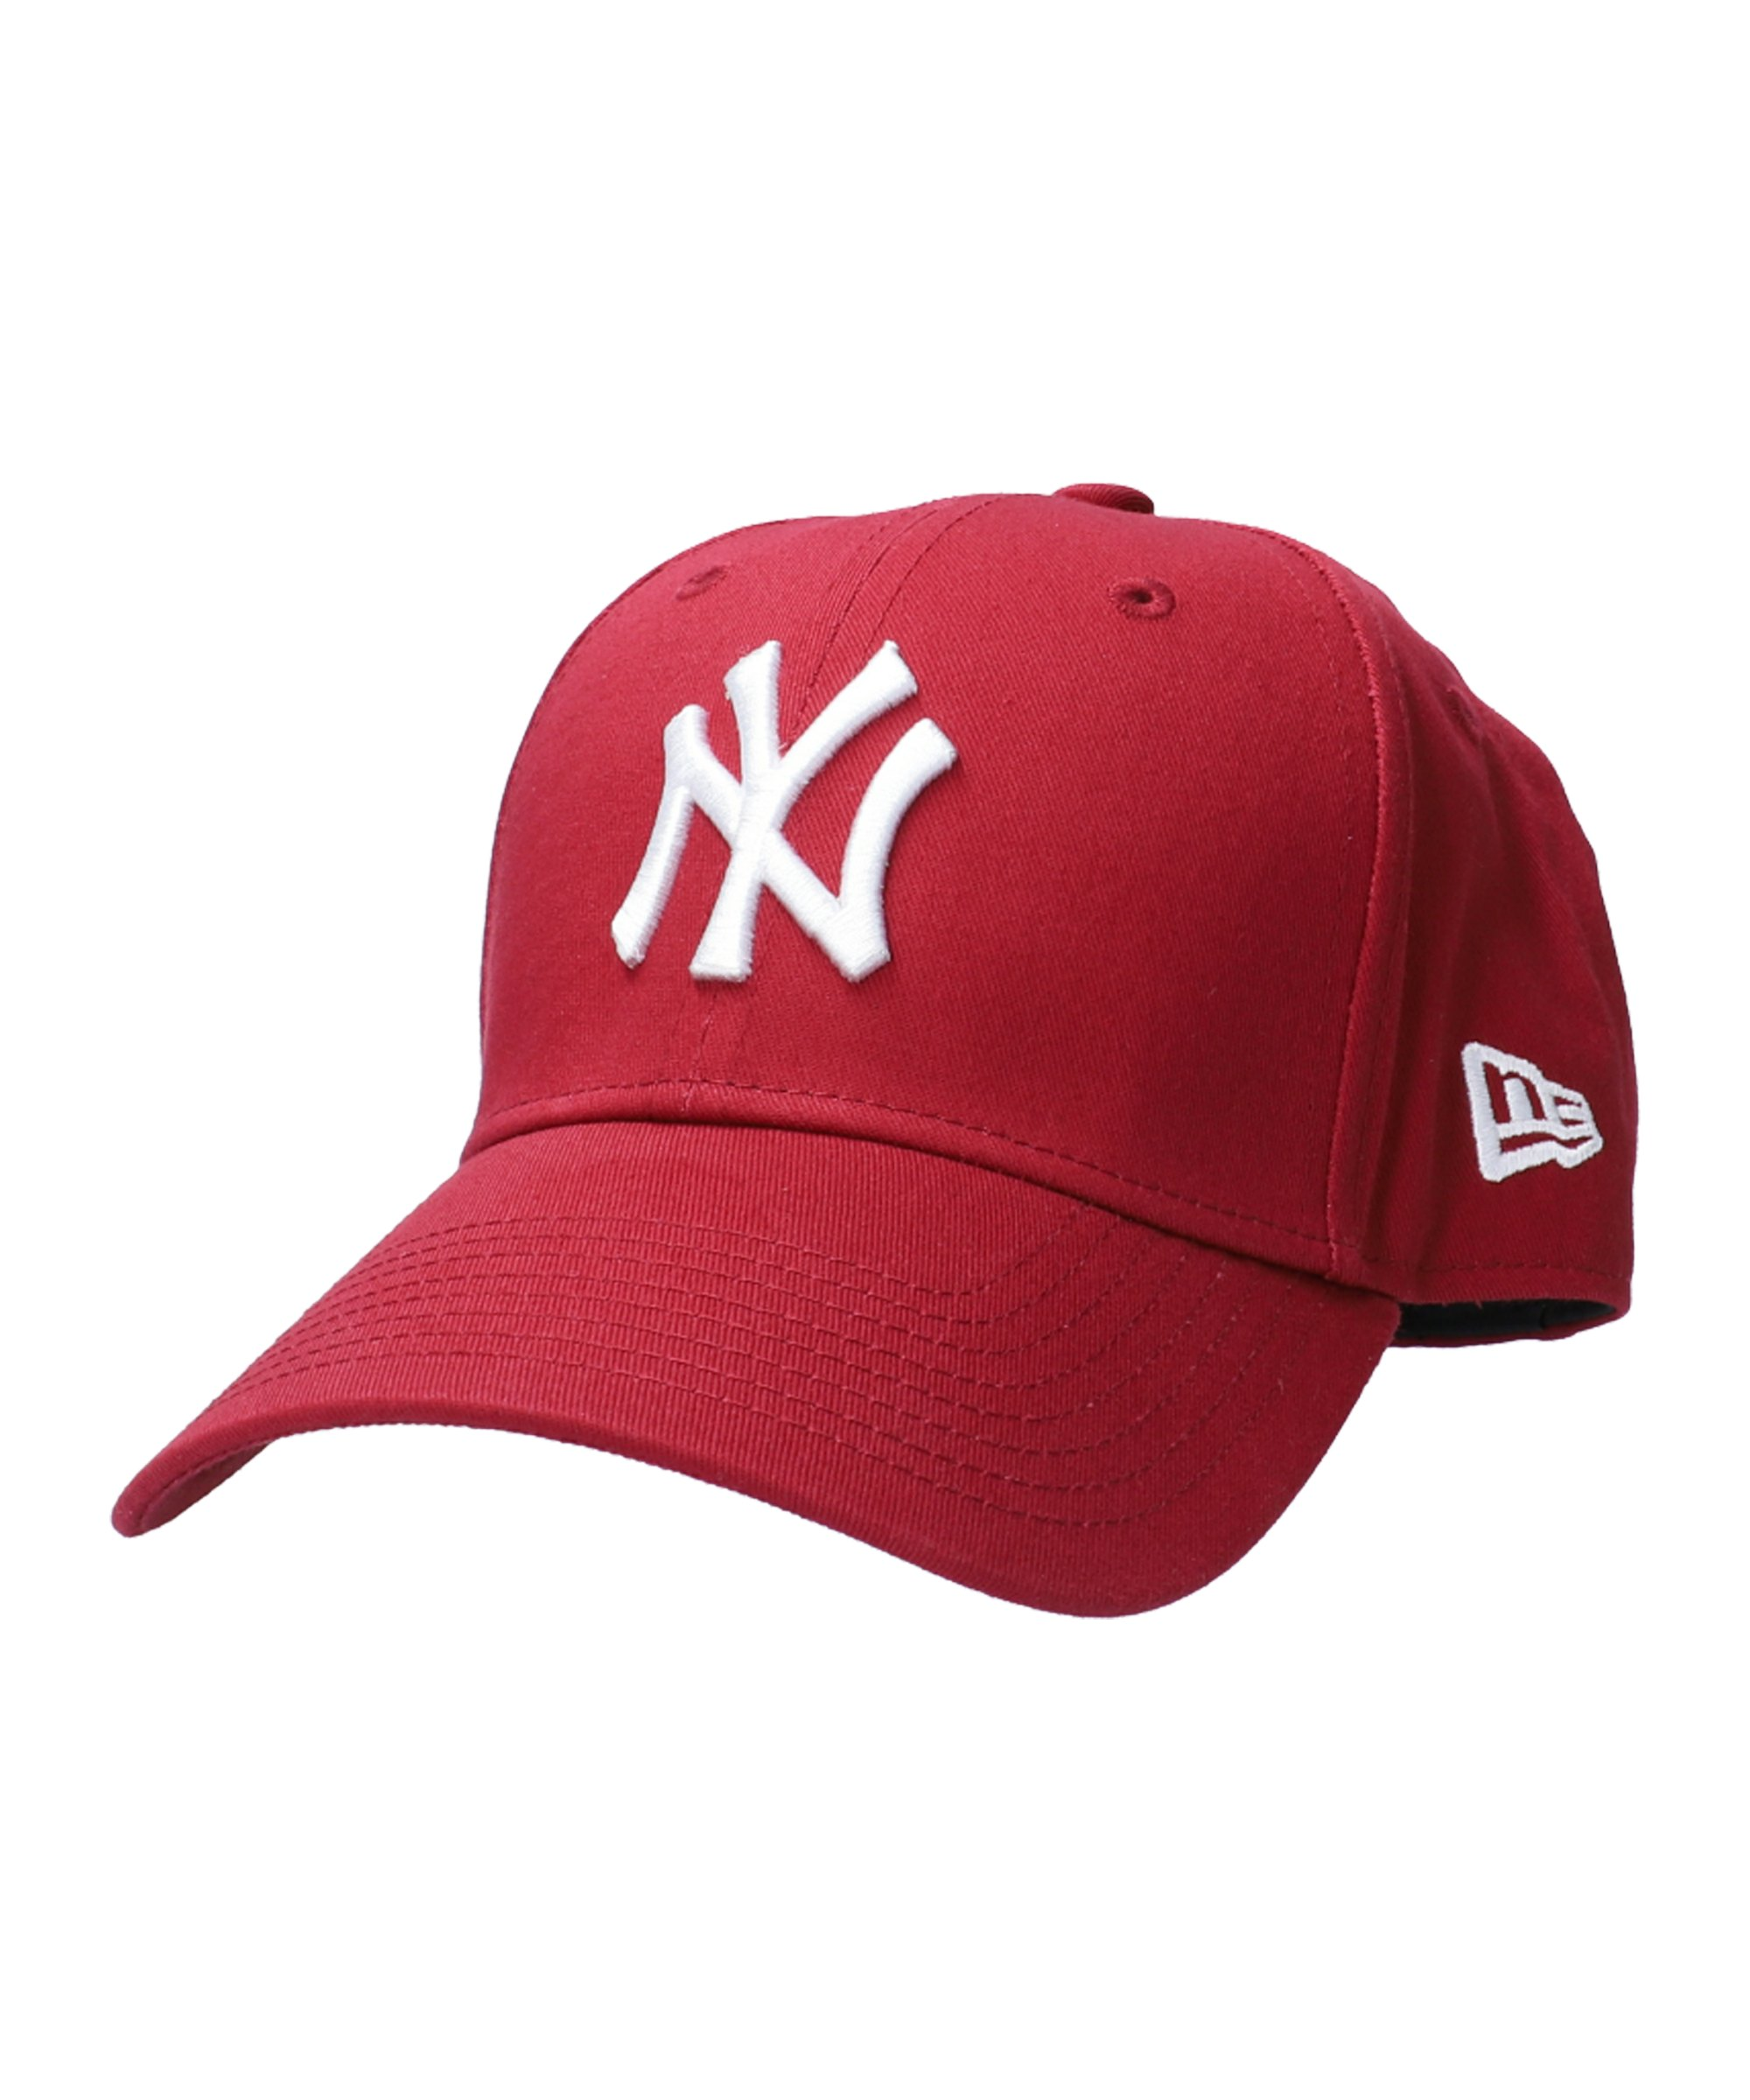 New Era NY Yankees 9Forty Cap Rot Weiss - weiss